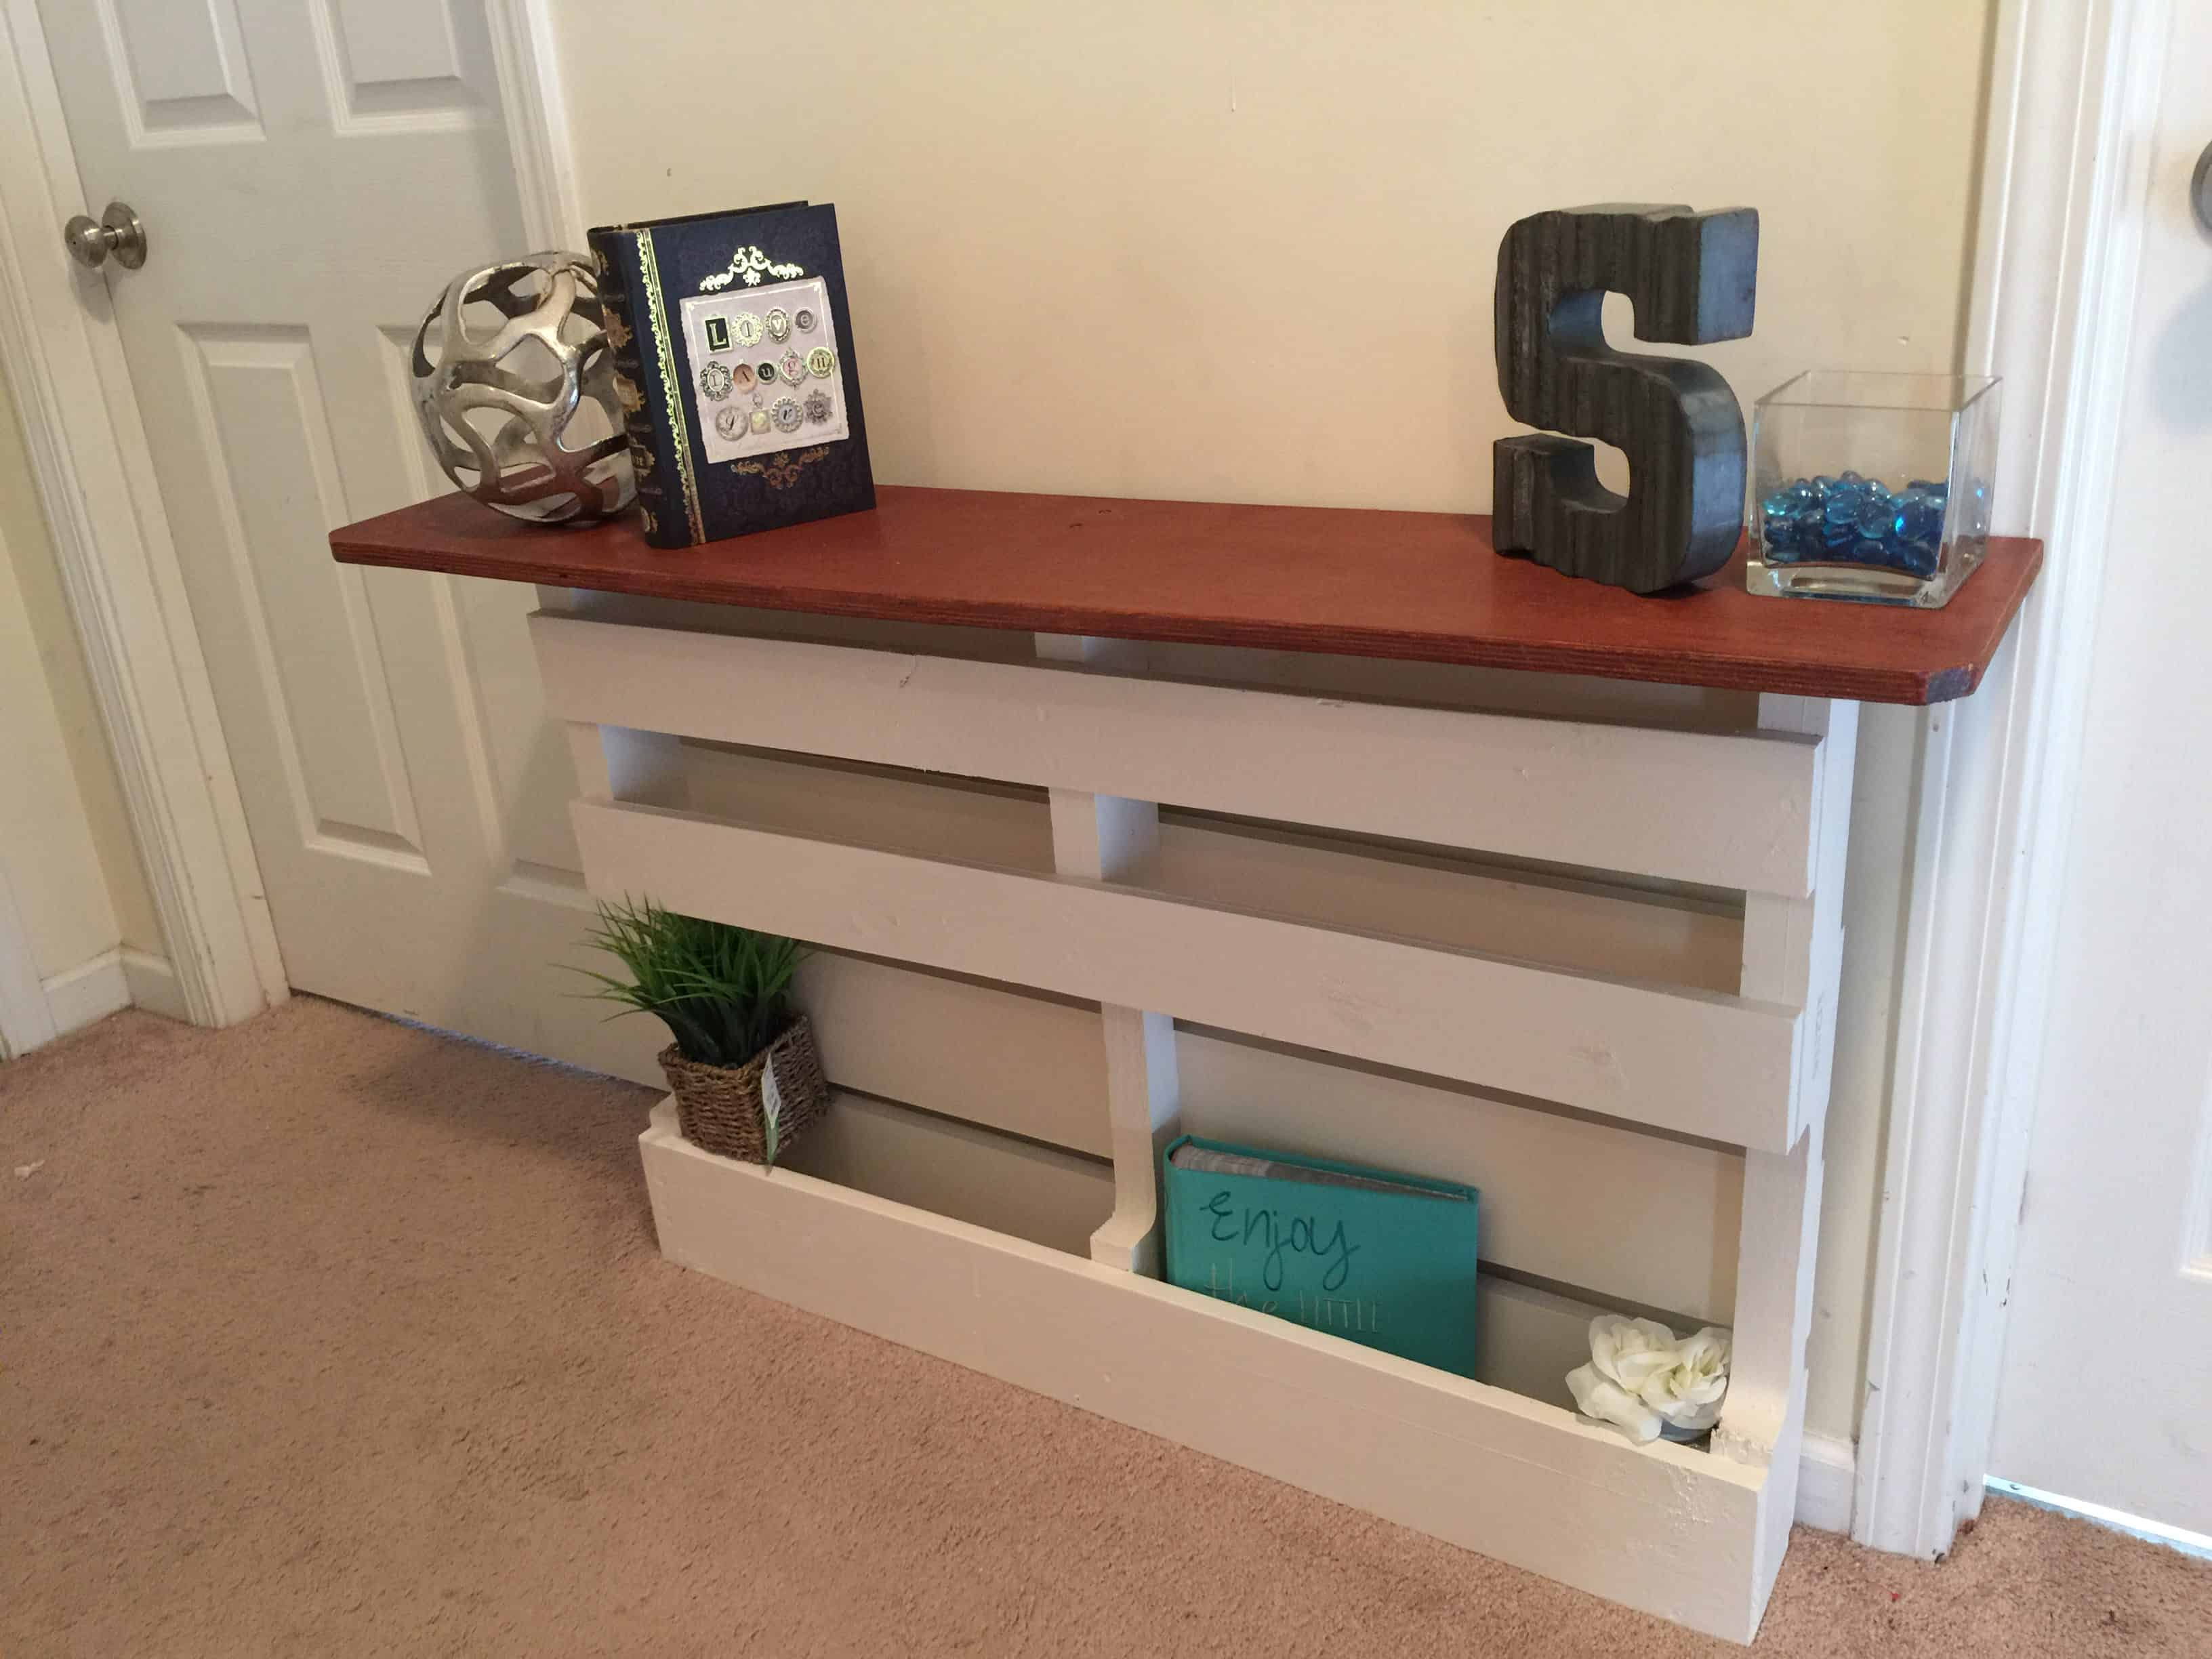 Bathroom cabinets and storage units - Shabby Chic Pallet Shelving Units Pallet Ideas 1001 Pallets